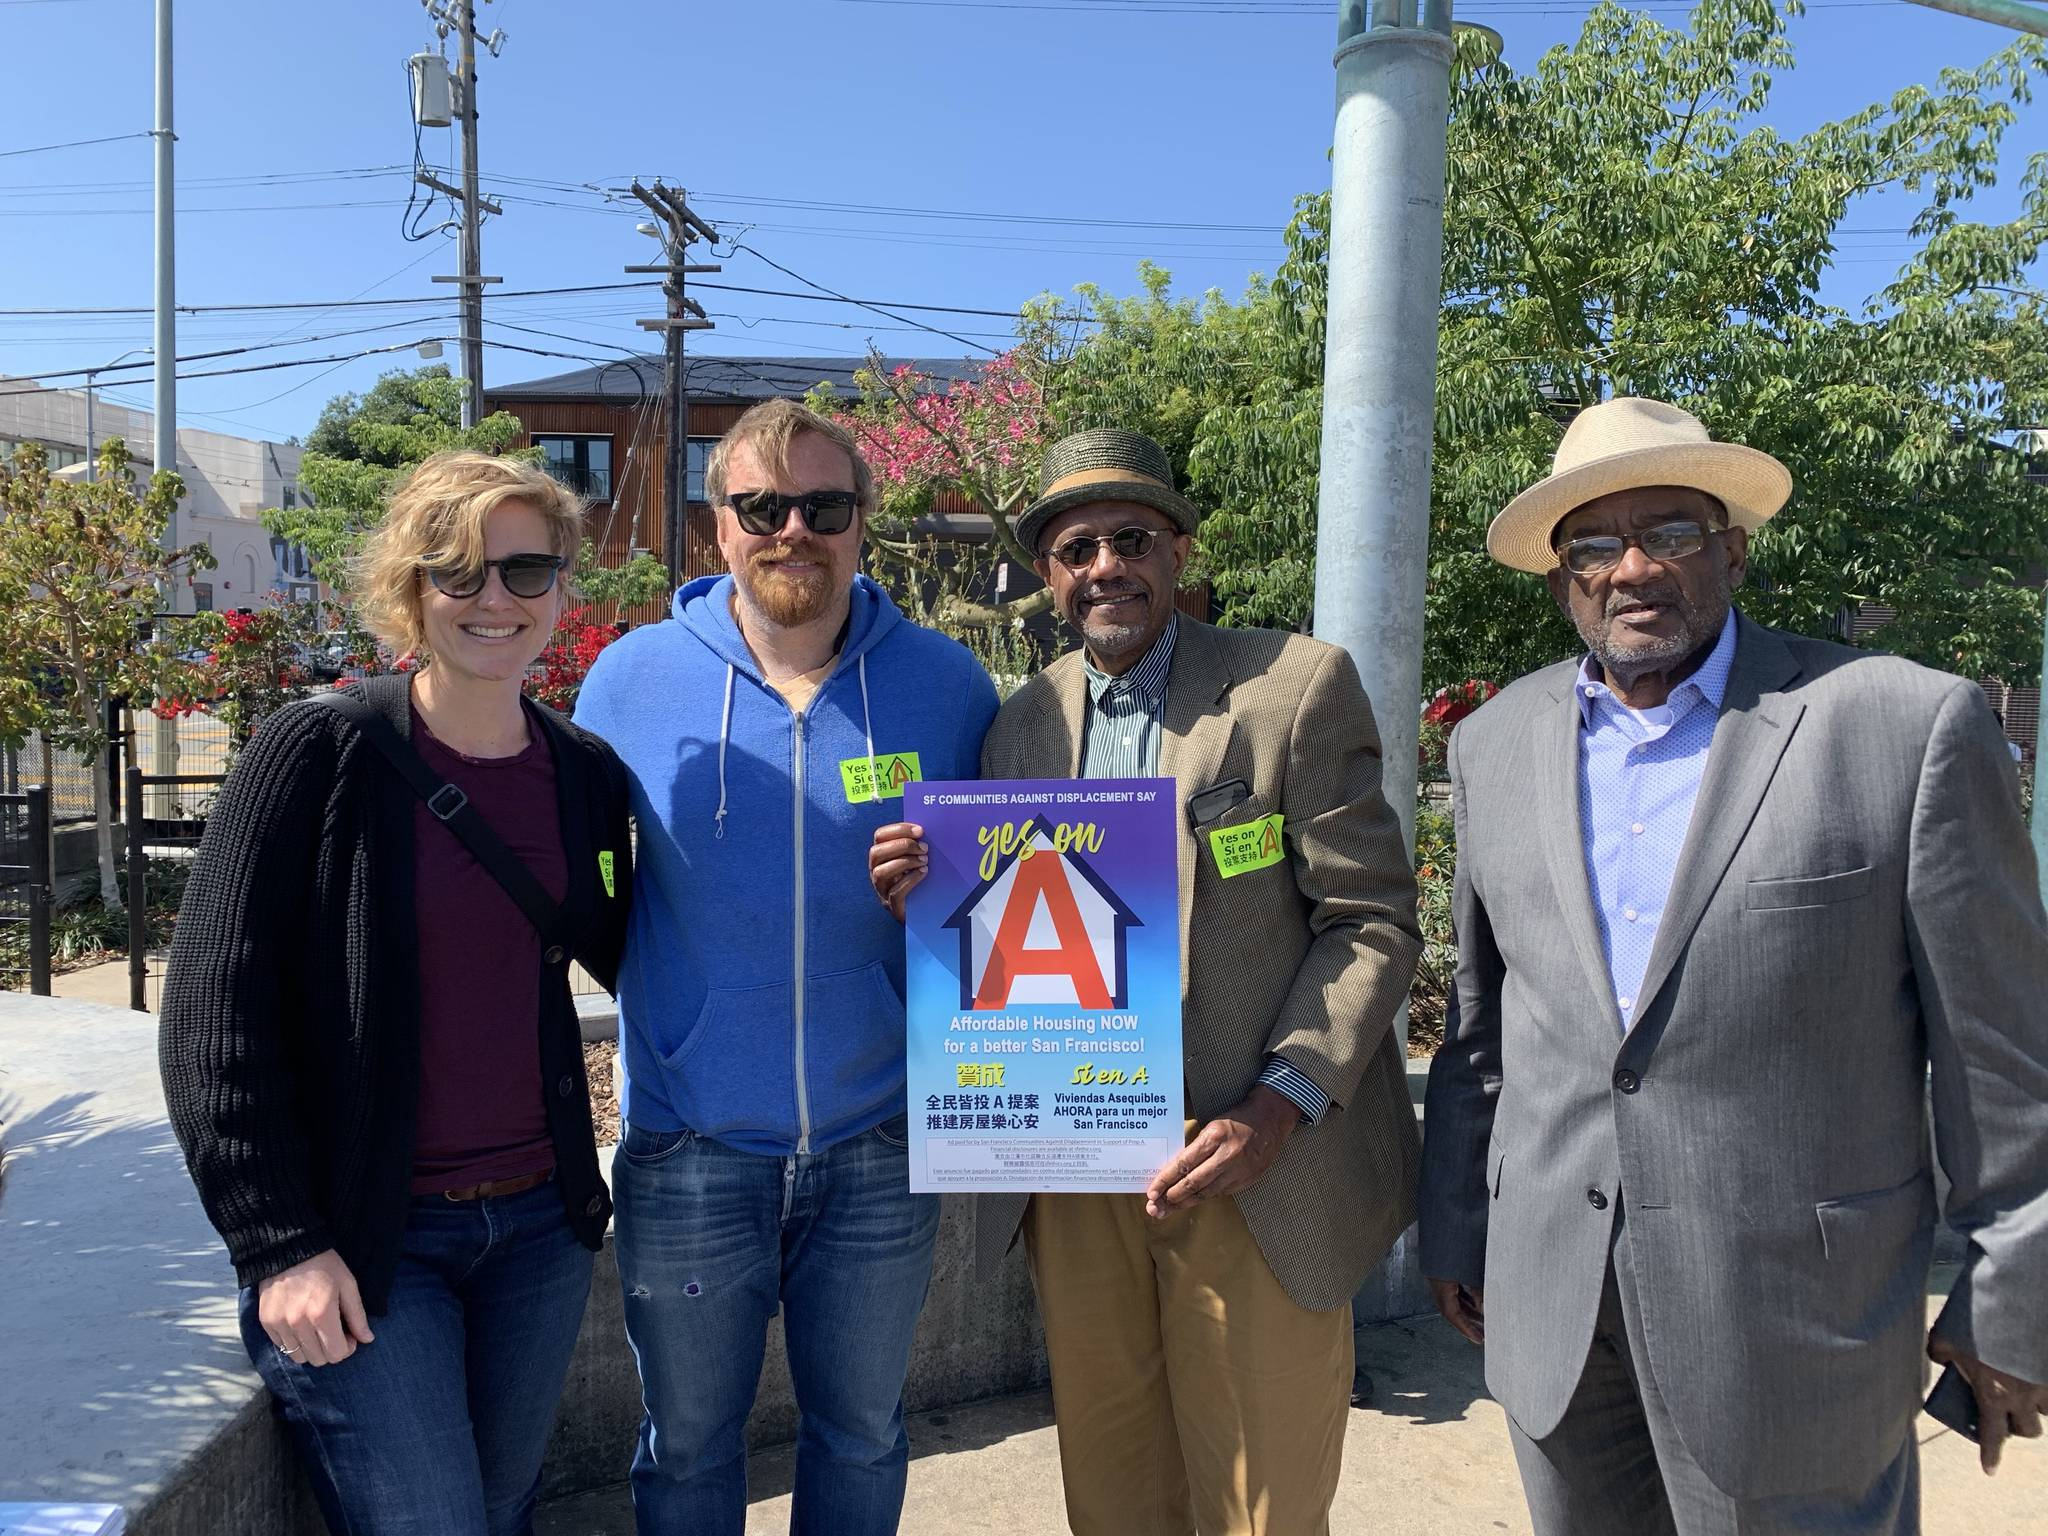 From left: Alexandra Goldman, a community planner at Tenderloin Neighborhood Development Corporation; Matthias Mormino, a policy analyst at Chinatown Community Development Center; Alan Glenn, executive director at Without Walls Church and Rev. Arnold Townsend, a board member at Without Walls Church, gathered at Chan Kaajal Park in the Mission District on Saturday, Sept. 28 2019, to promote Proposition A, an affordable housing bond measure. (Caroline Ghisolfi/Special to the S.F. Examiner)